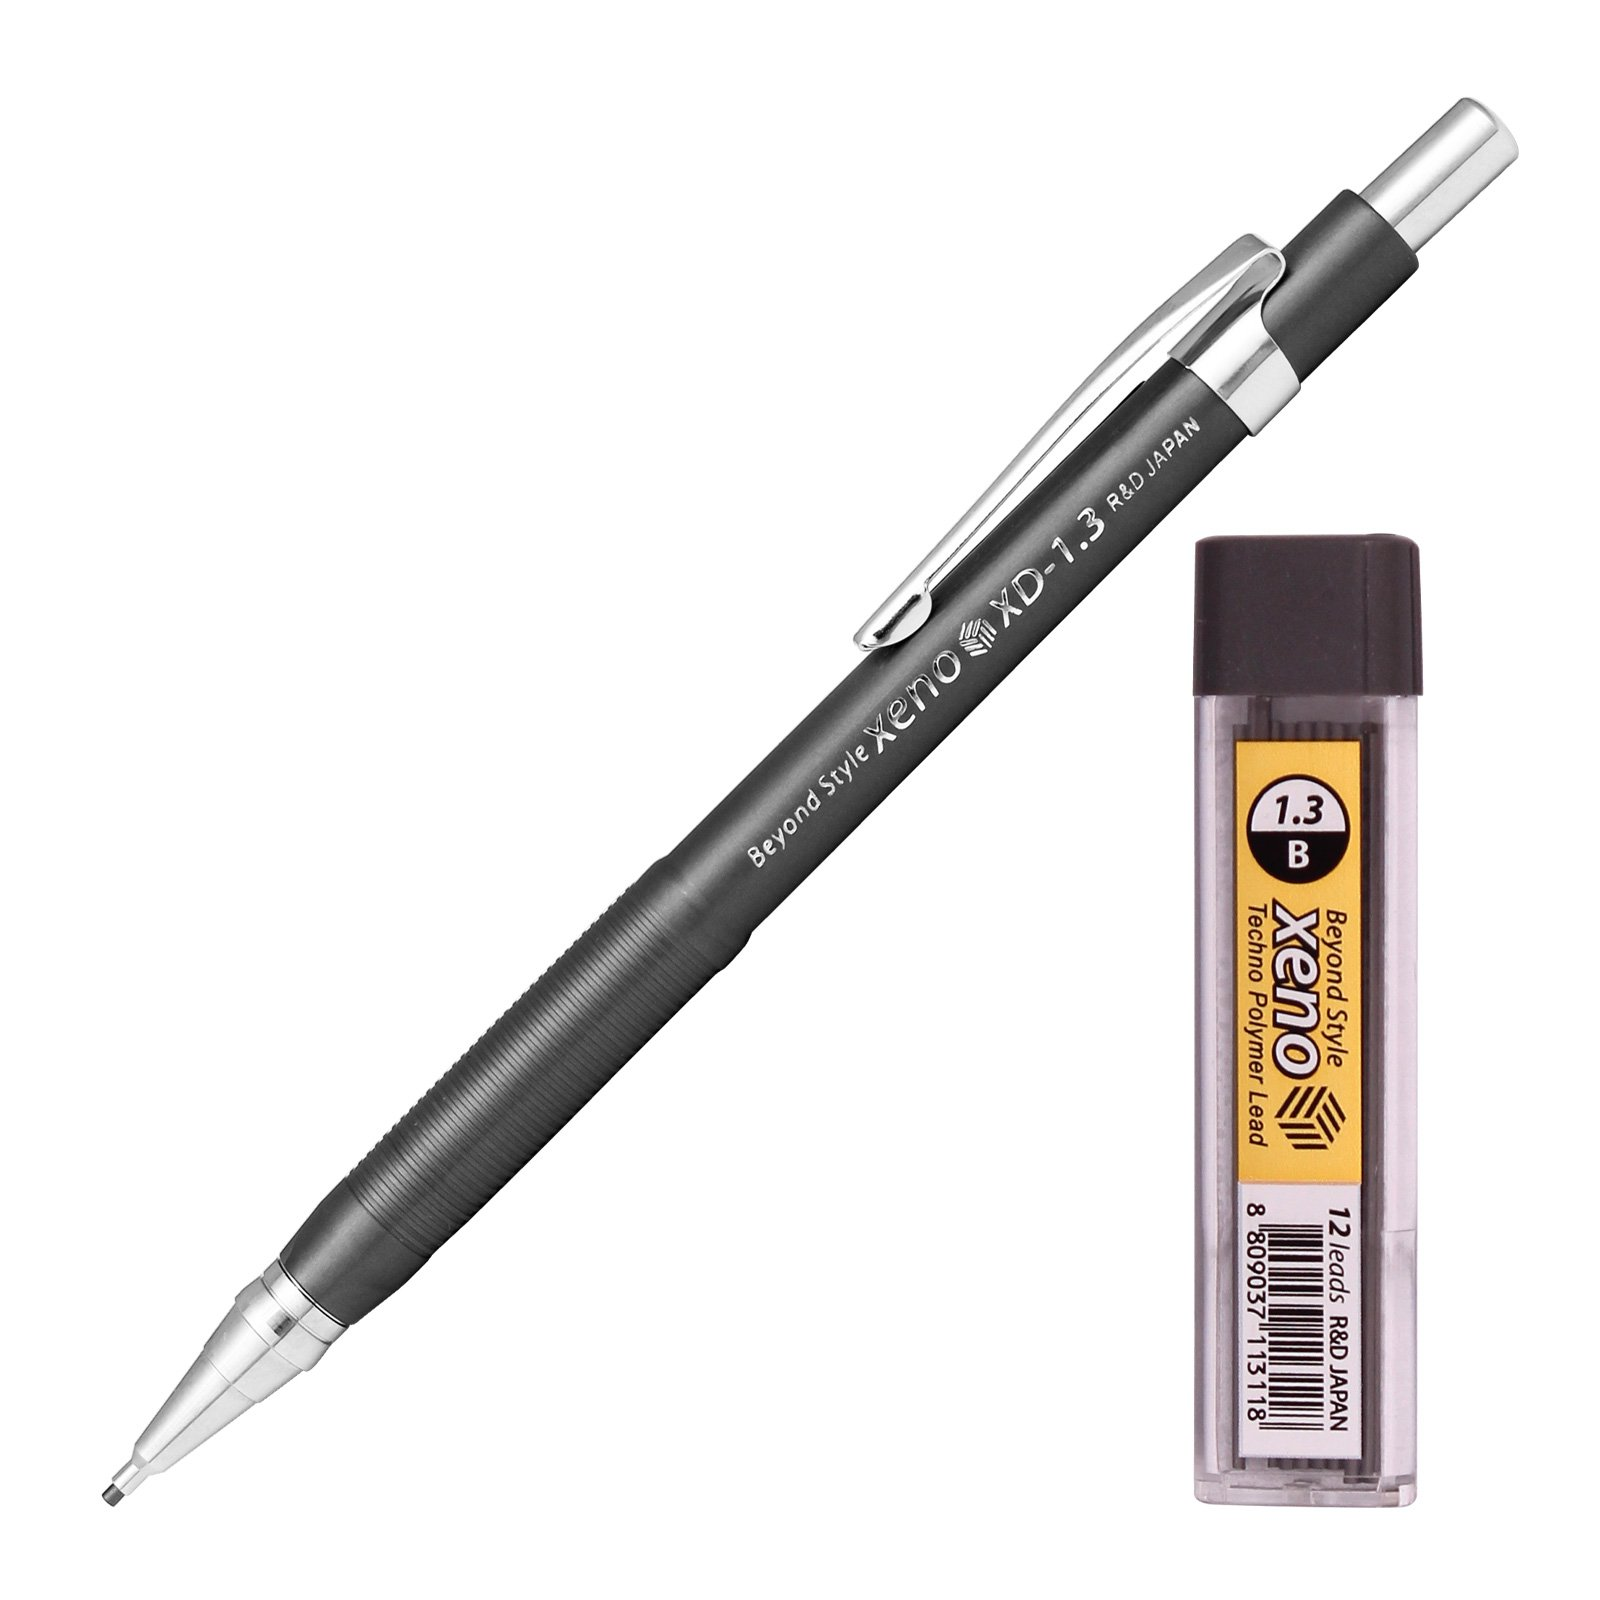 Xeno Beyond Style-Xd Mechanical Pencil for Drafting Sharp Pencils 0.3 mm /0.5 mm /0.7 mm /0.9 mm/ 1.3 mm (Pack of 5 Pencils) + Lead by Xeno (Image #3)